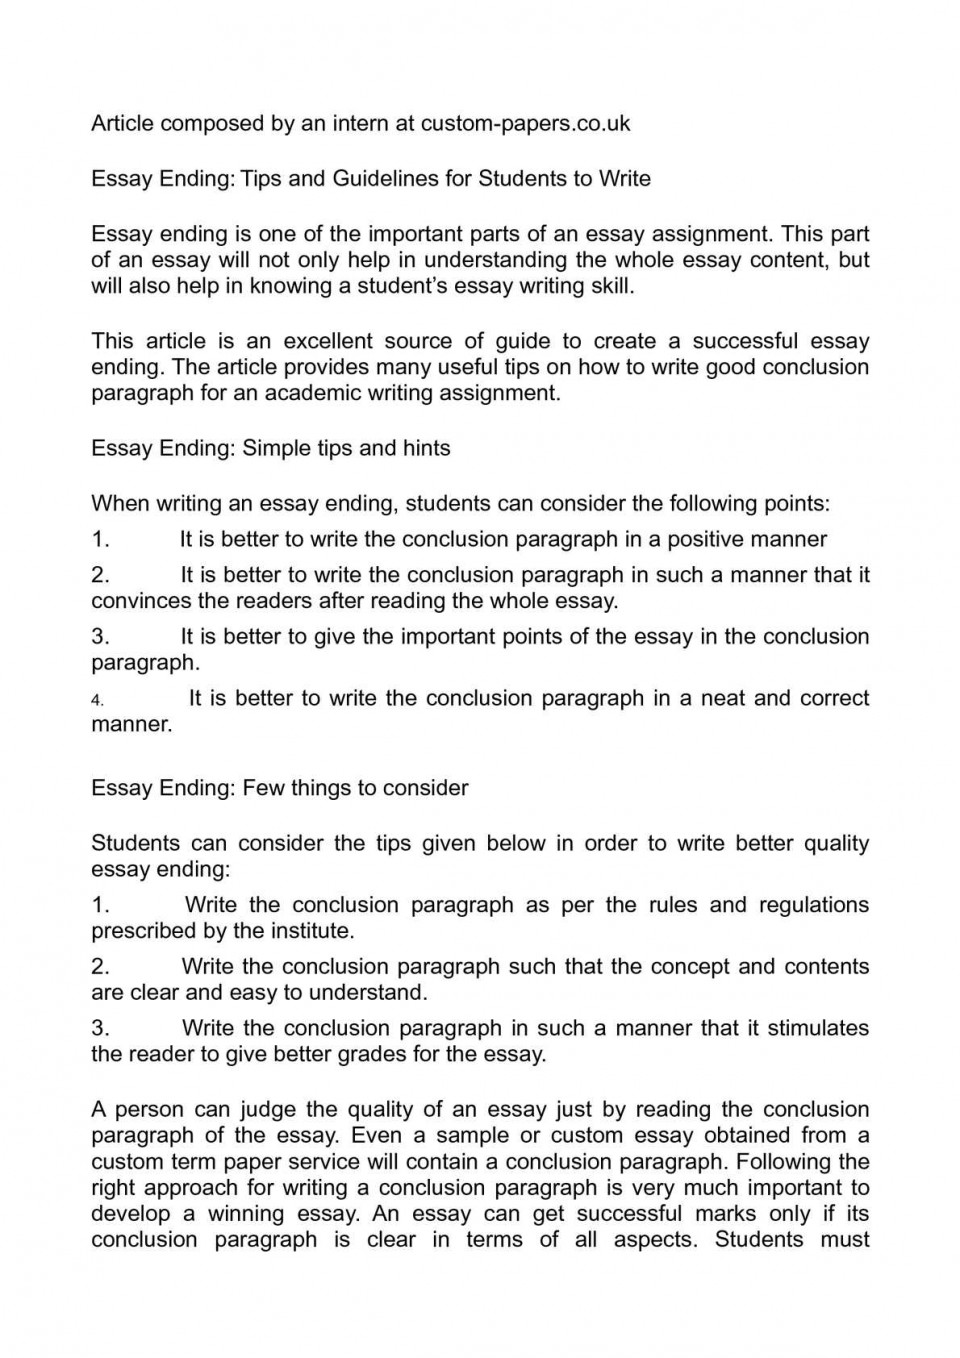 001 Parts Of An Essay Ending Tips And Guidelines For Students To Write Writing Persuasi Pdf Three Persuasive Stupendous Argumentative Ppt Worksheet Quiz 960